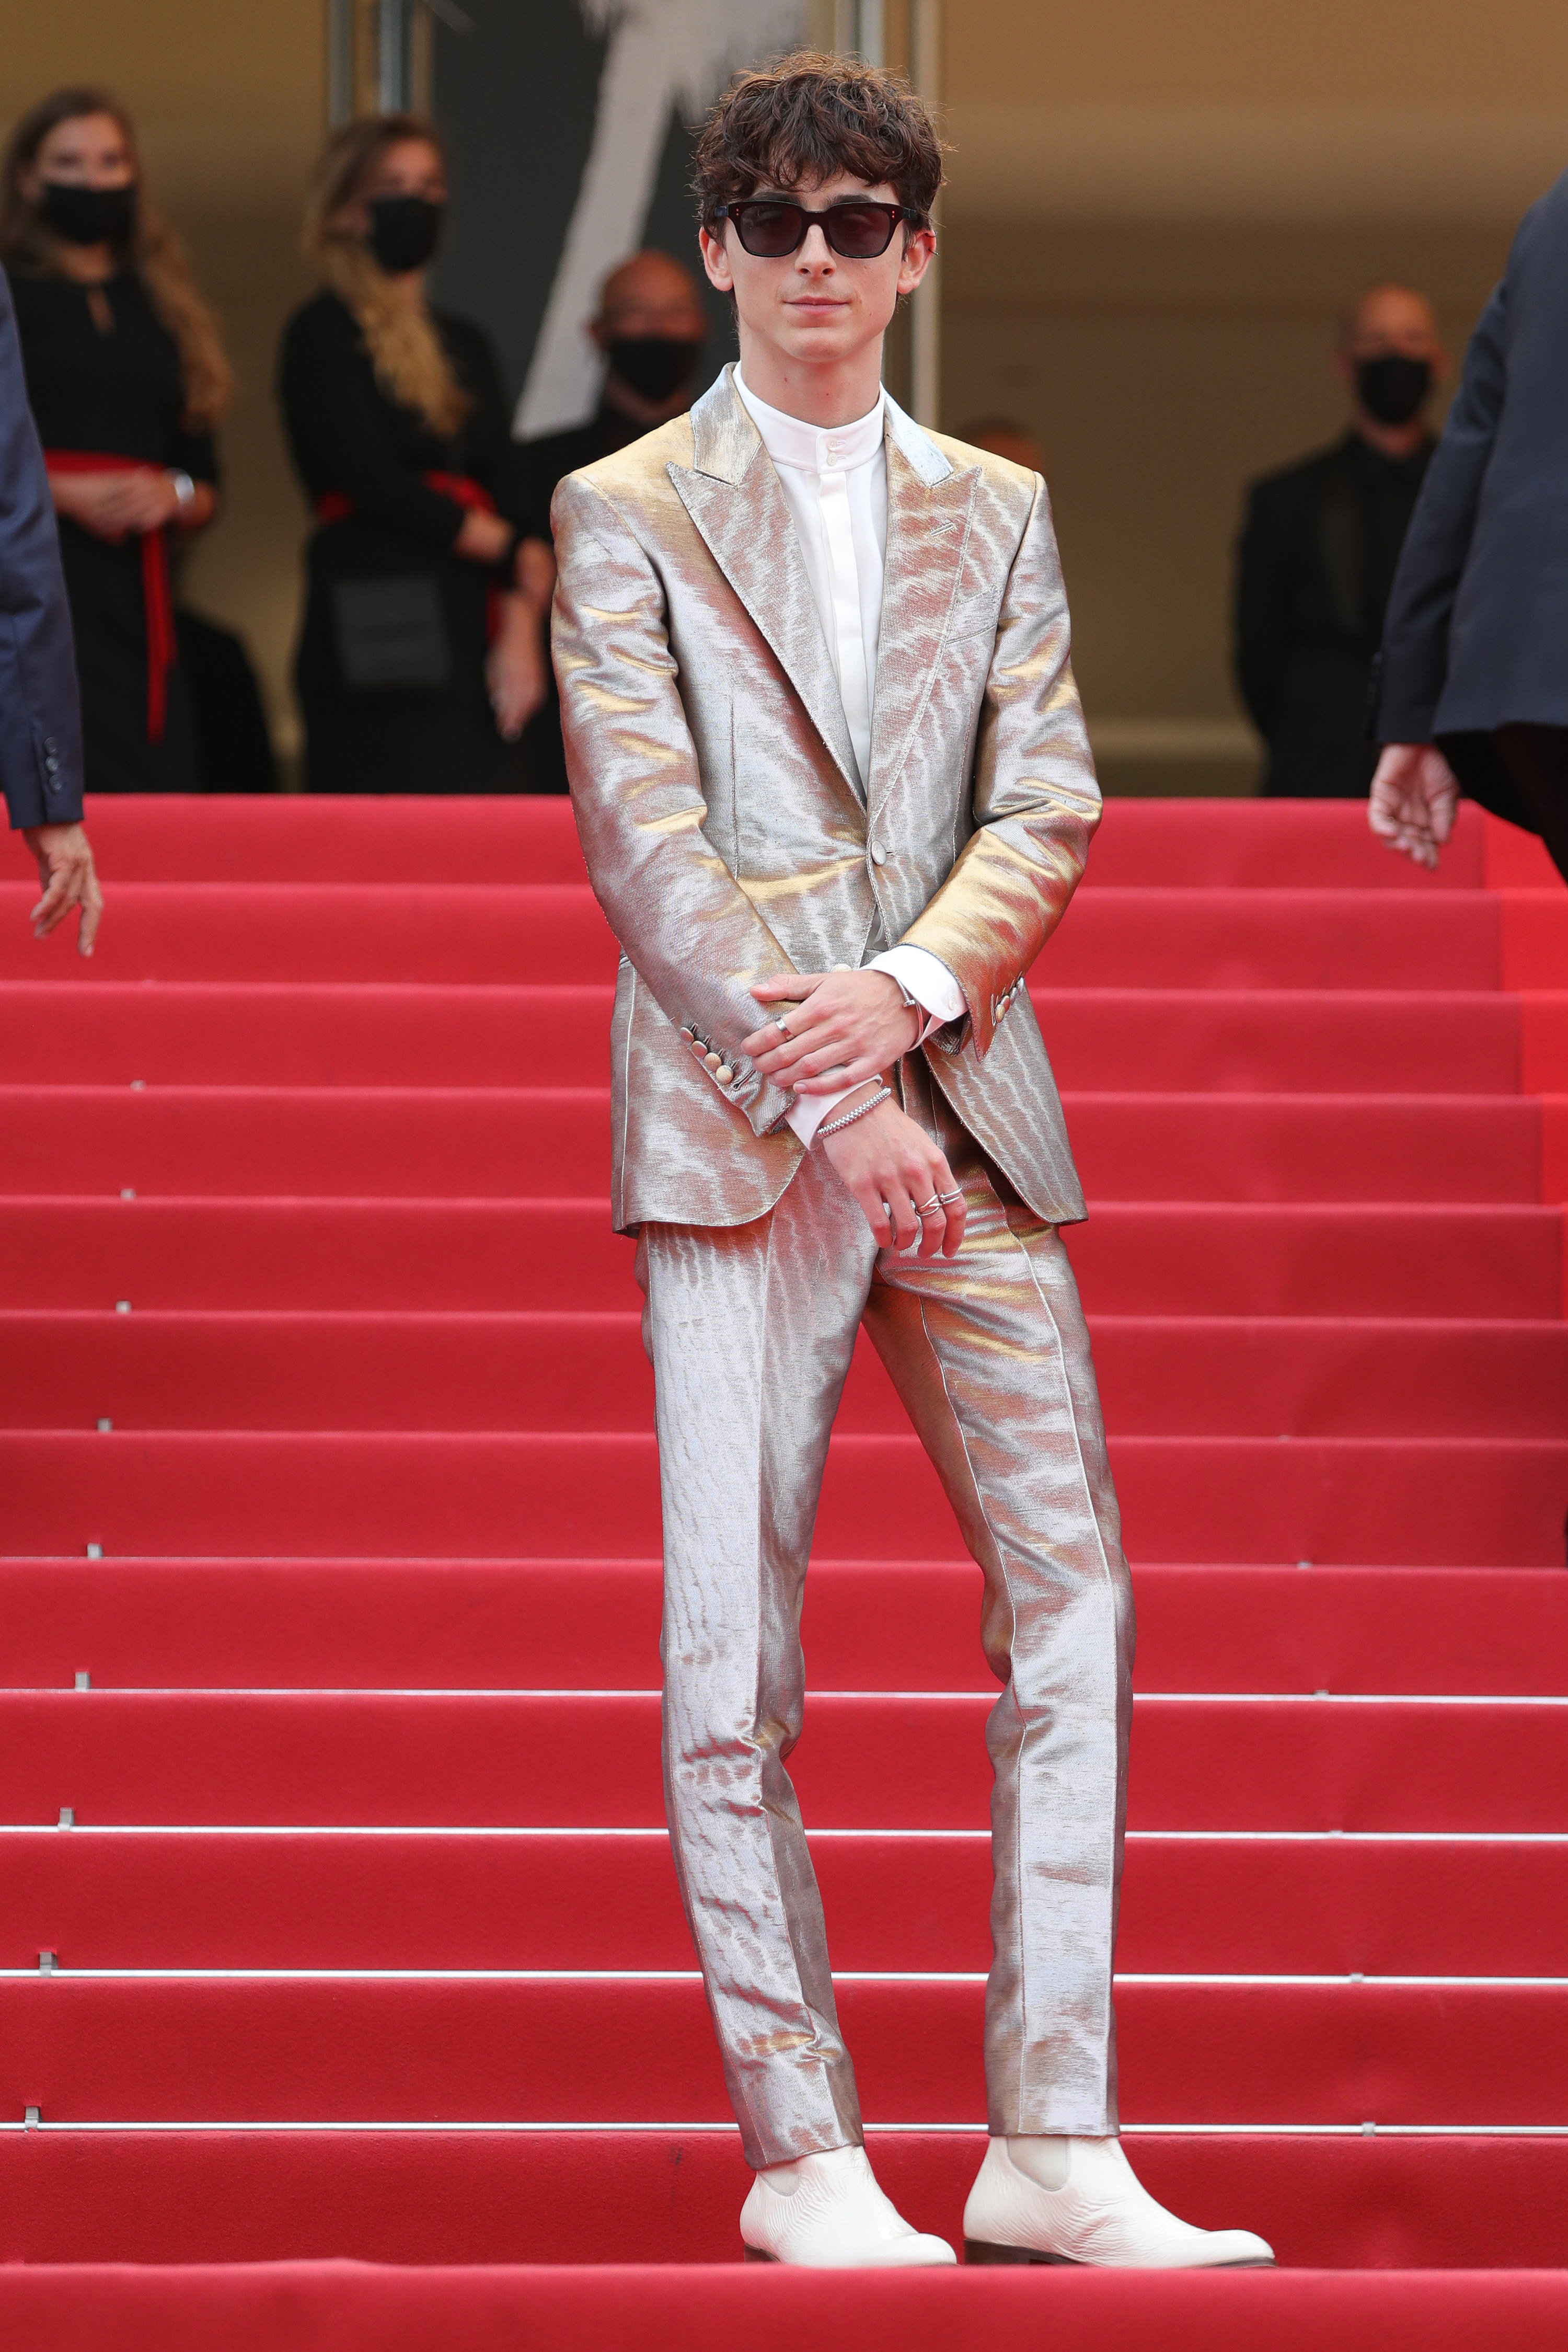 Timothée wars a shimmering silver silk suit with white boots and sunglasses